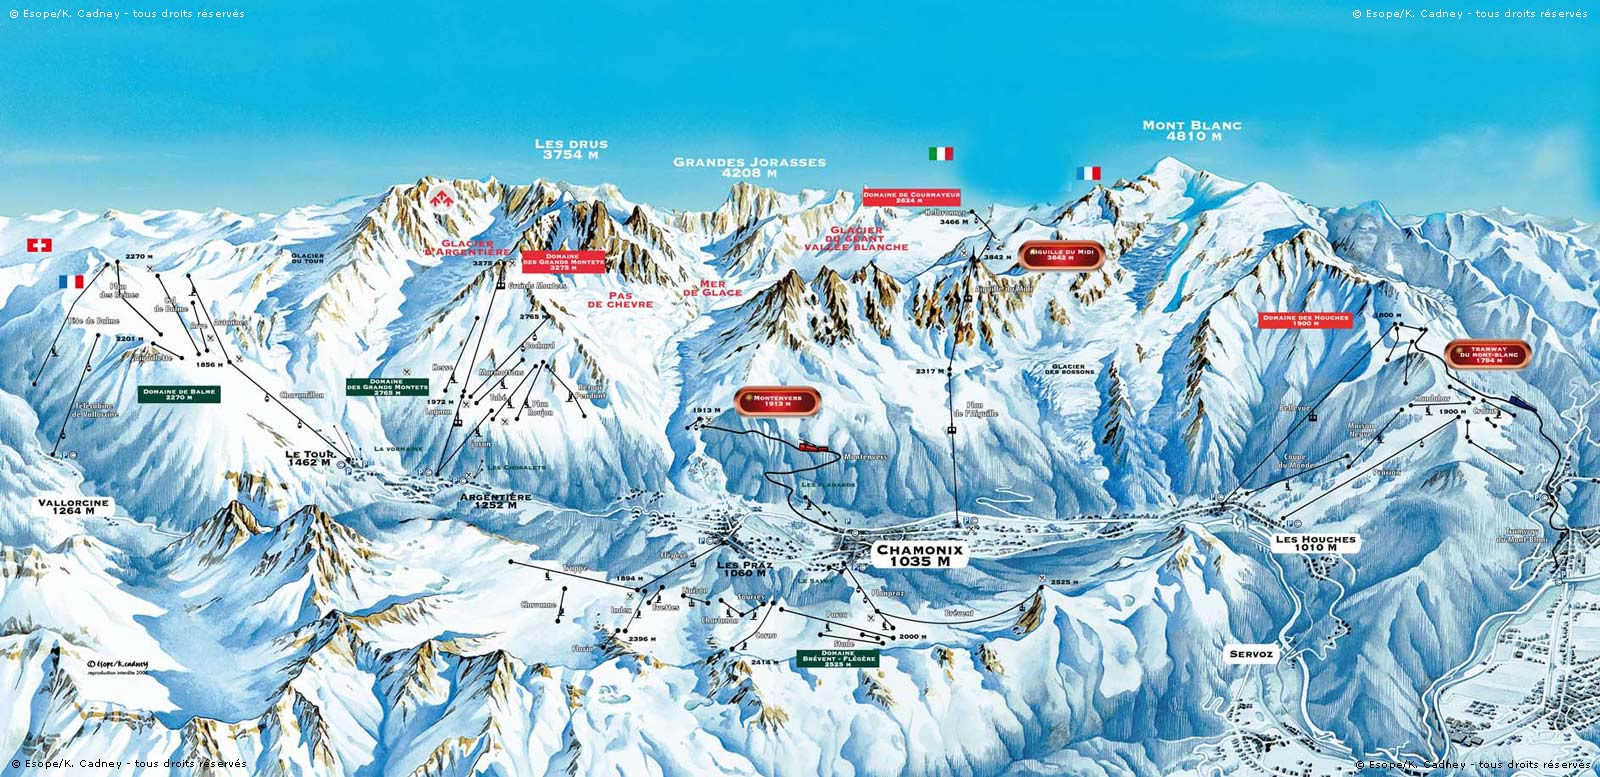 Taken From: http://www.skimap.info/europe/france/french_alps/chamonix/ski_map_chamonix.jpg